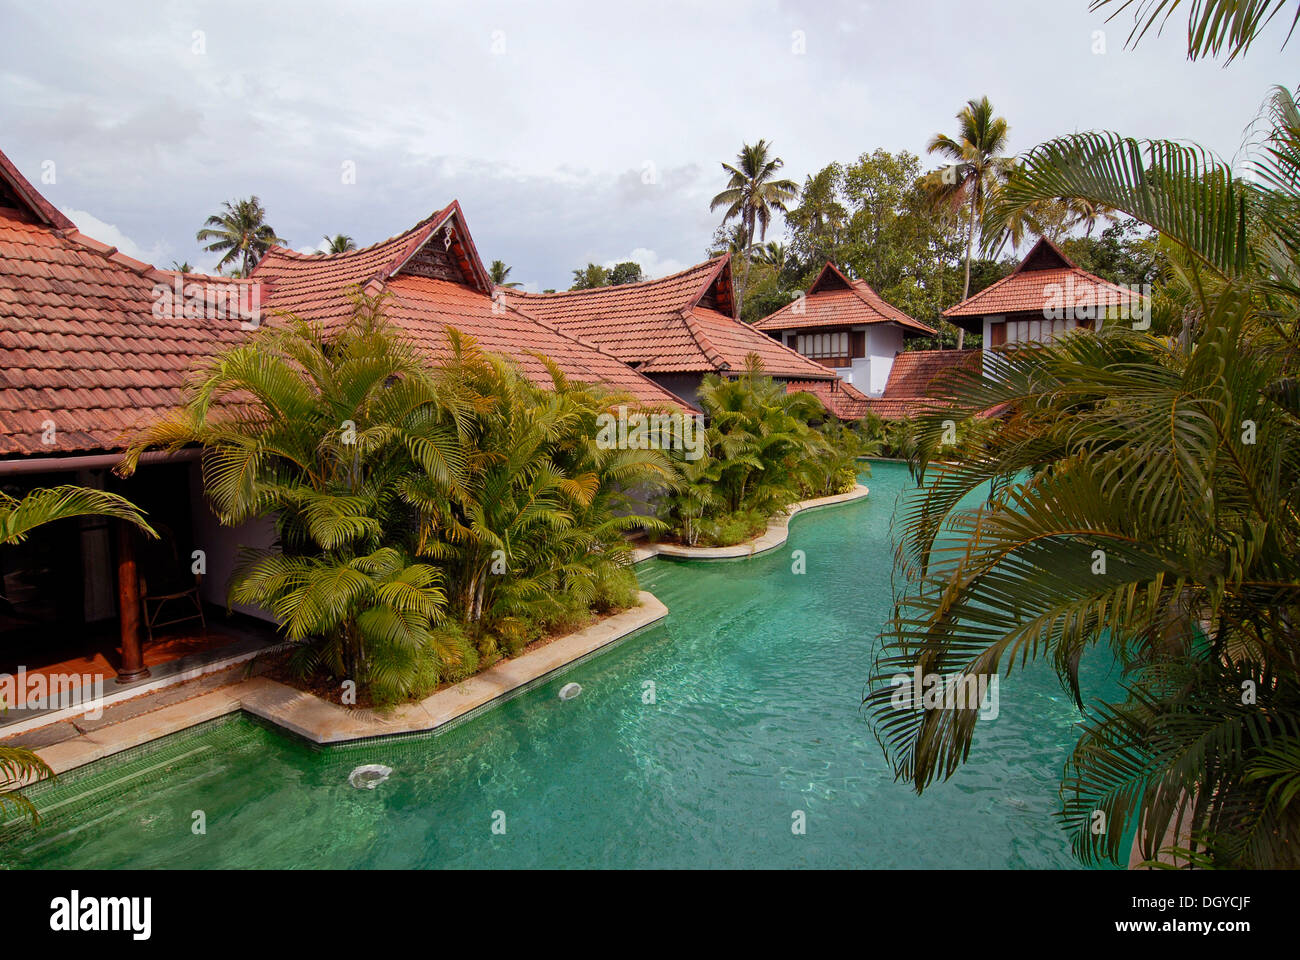 Pool Kumarakom Lake Resort Vembanad Lake Kerala South India Stock Photo 62068231 Alamy